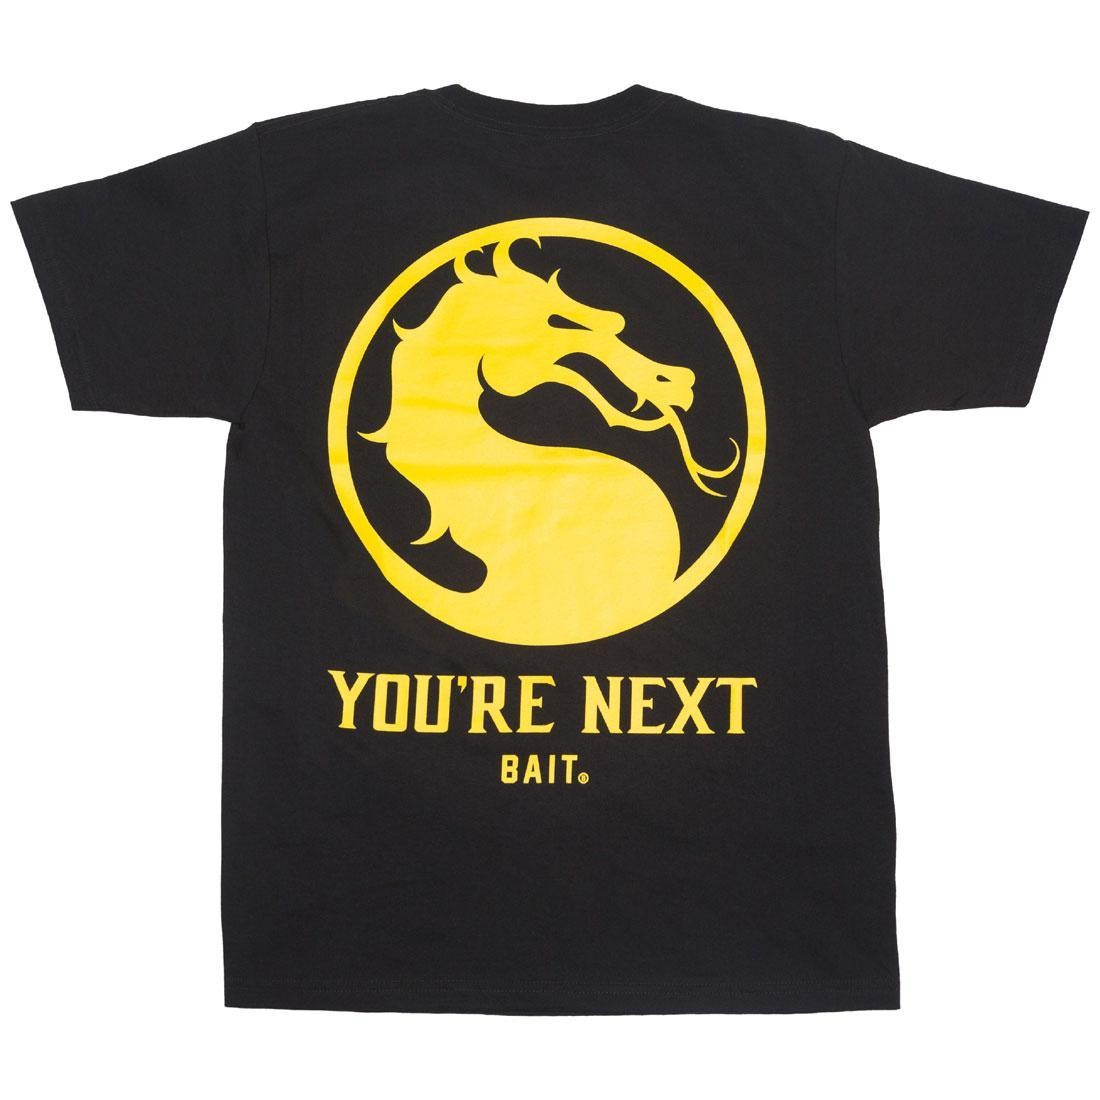 BAIT x Mortal Kombat 11 Men You're Next Tee (black)